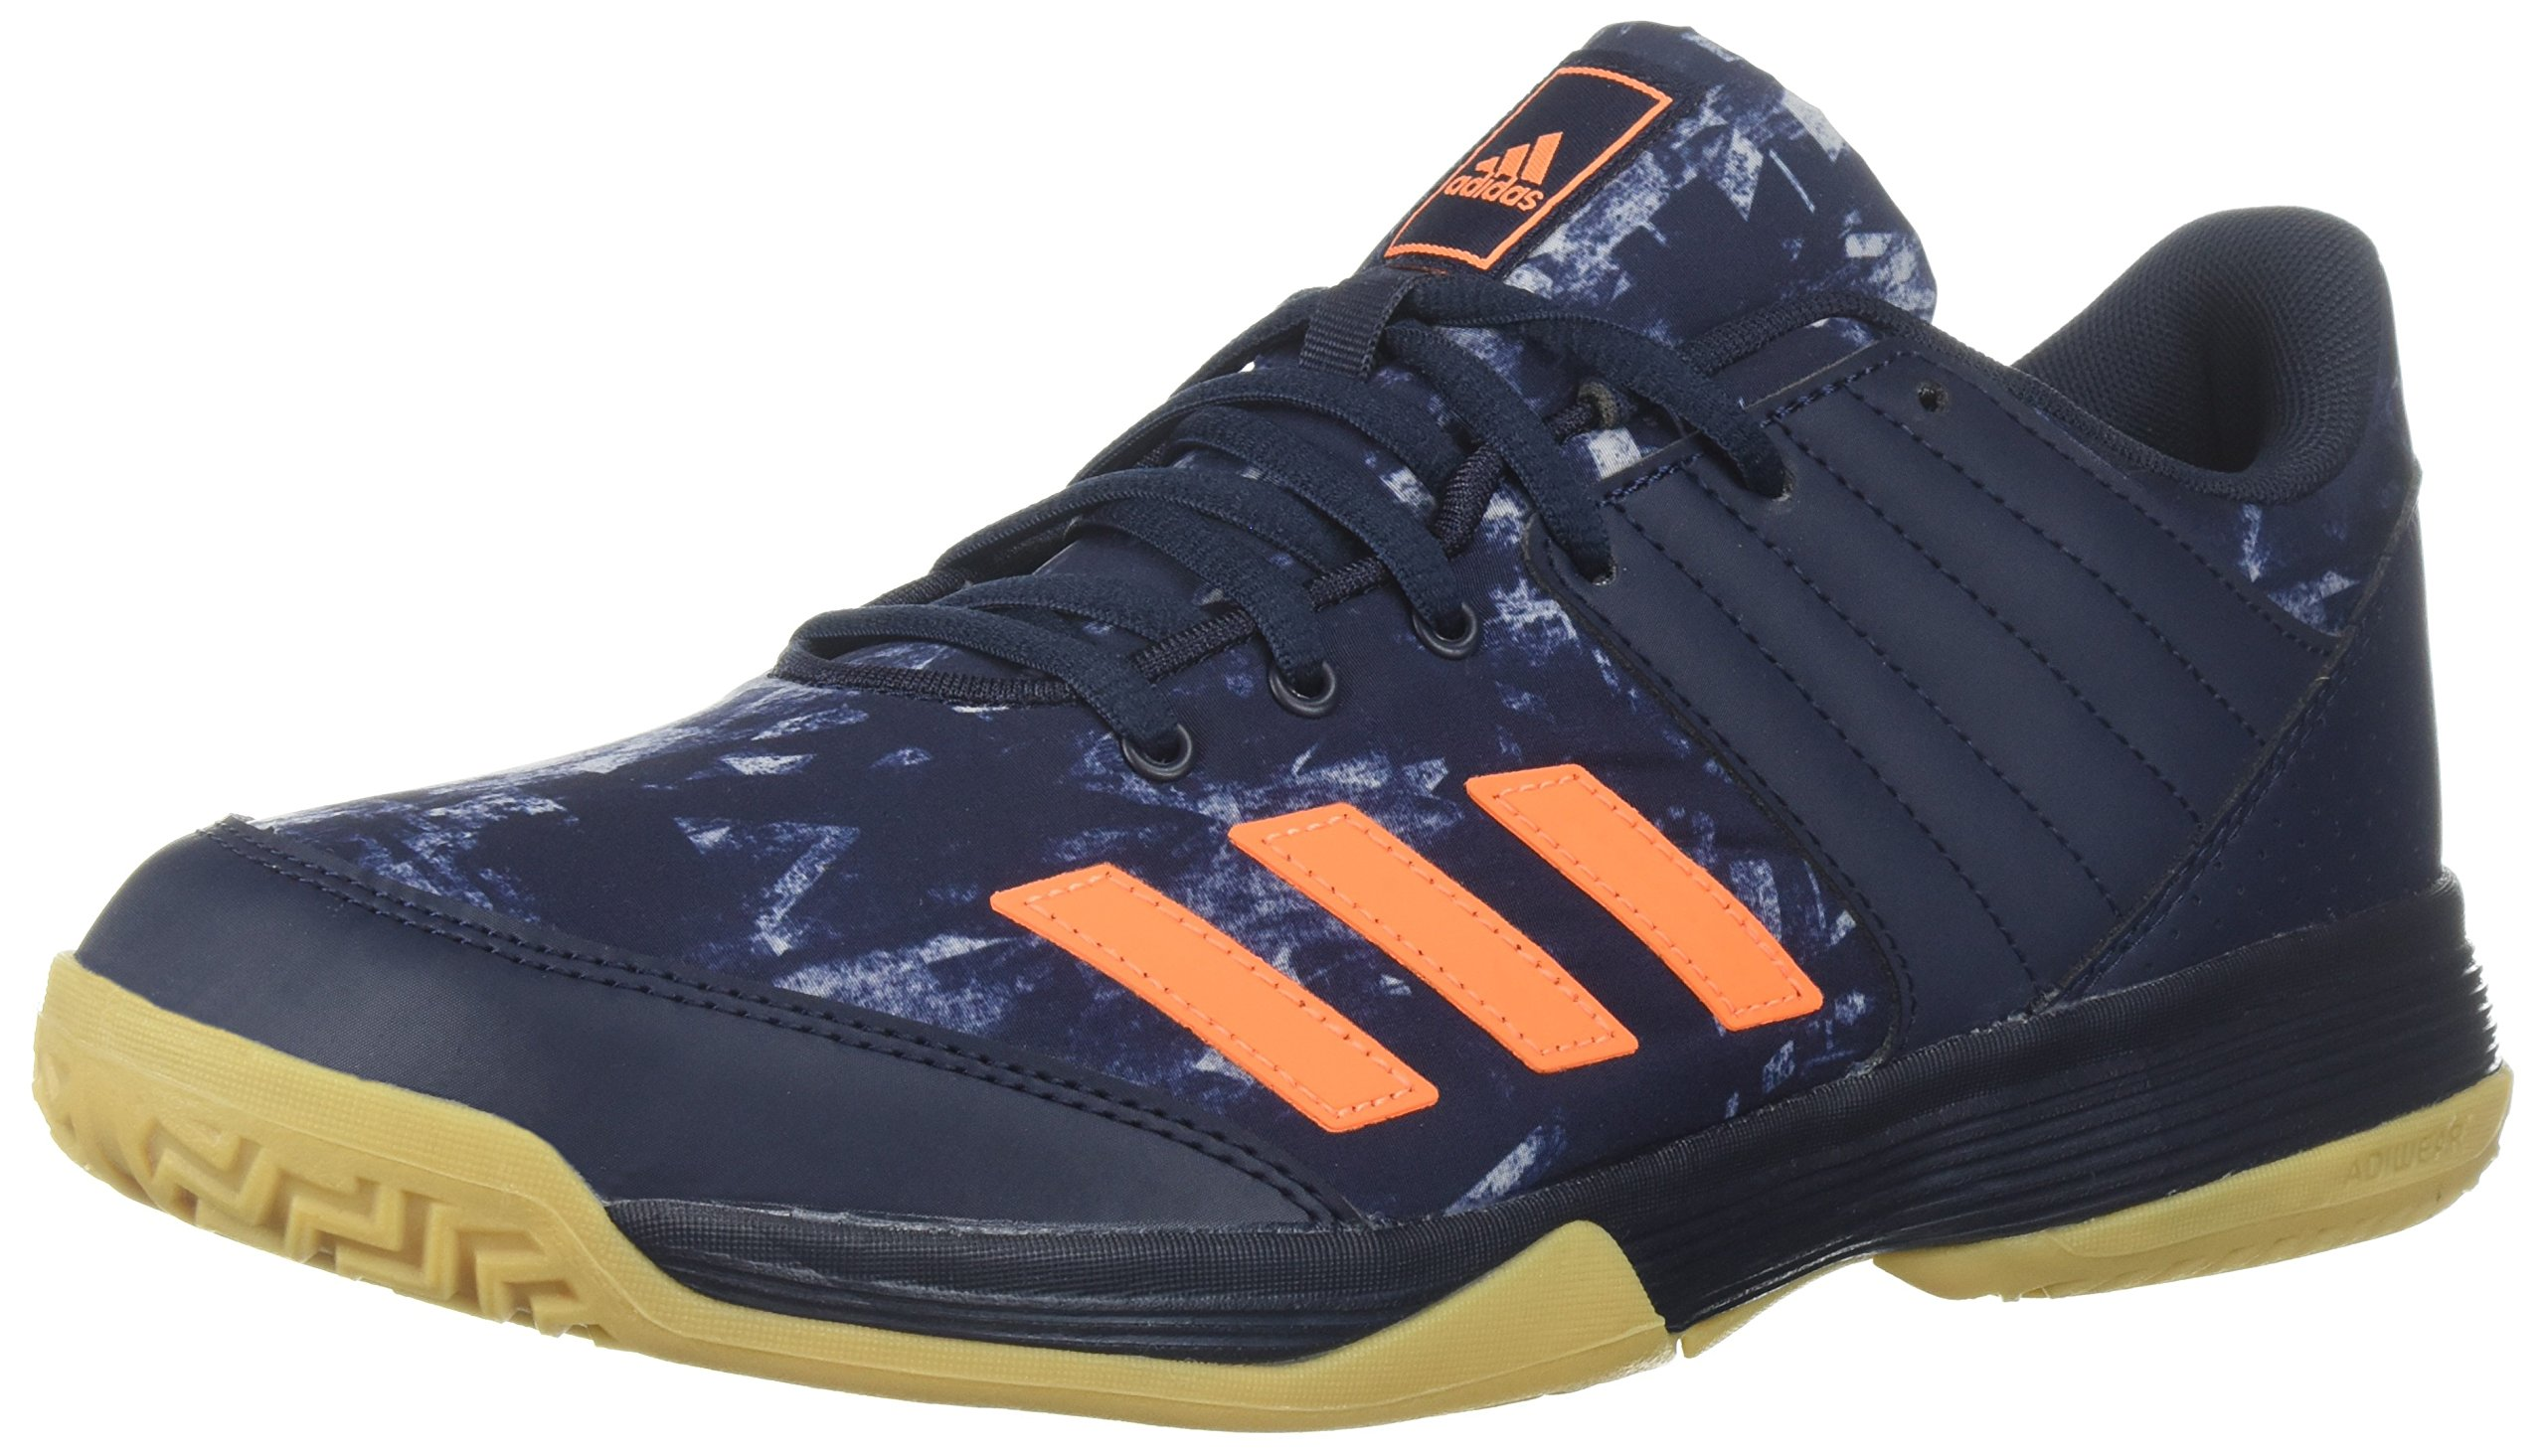 adidas Men's Ligra 5 Volleyball Shoe, Legend Ink/Hi-Res Orange/Grey Two, 14.5 M US